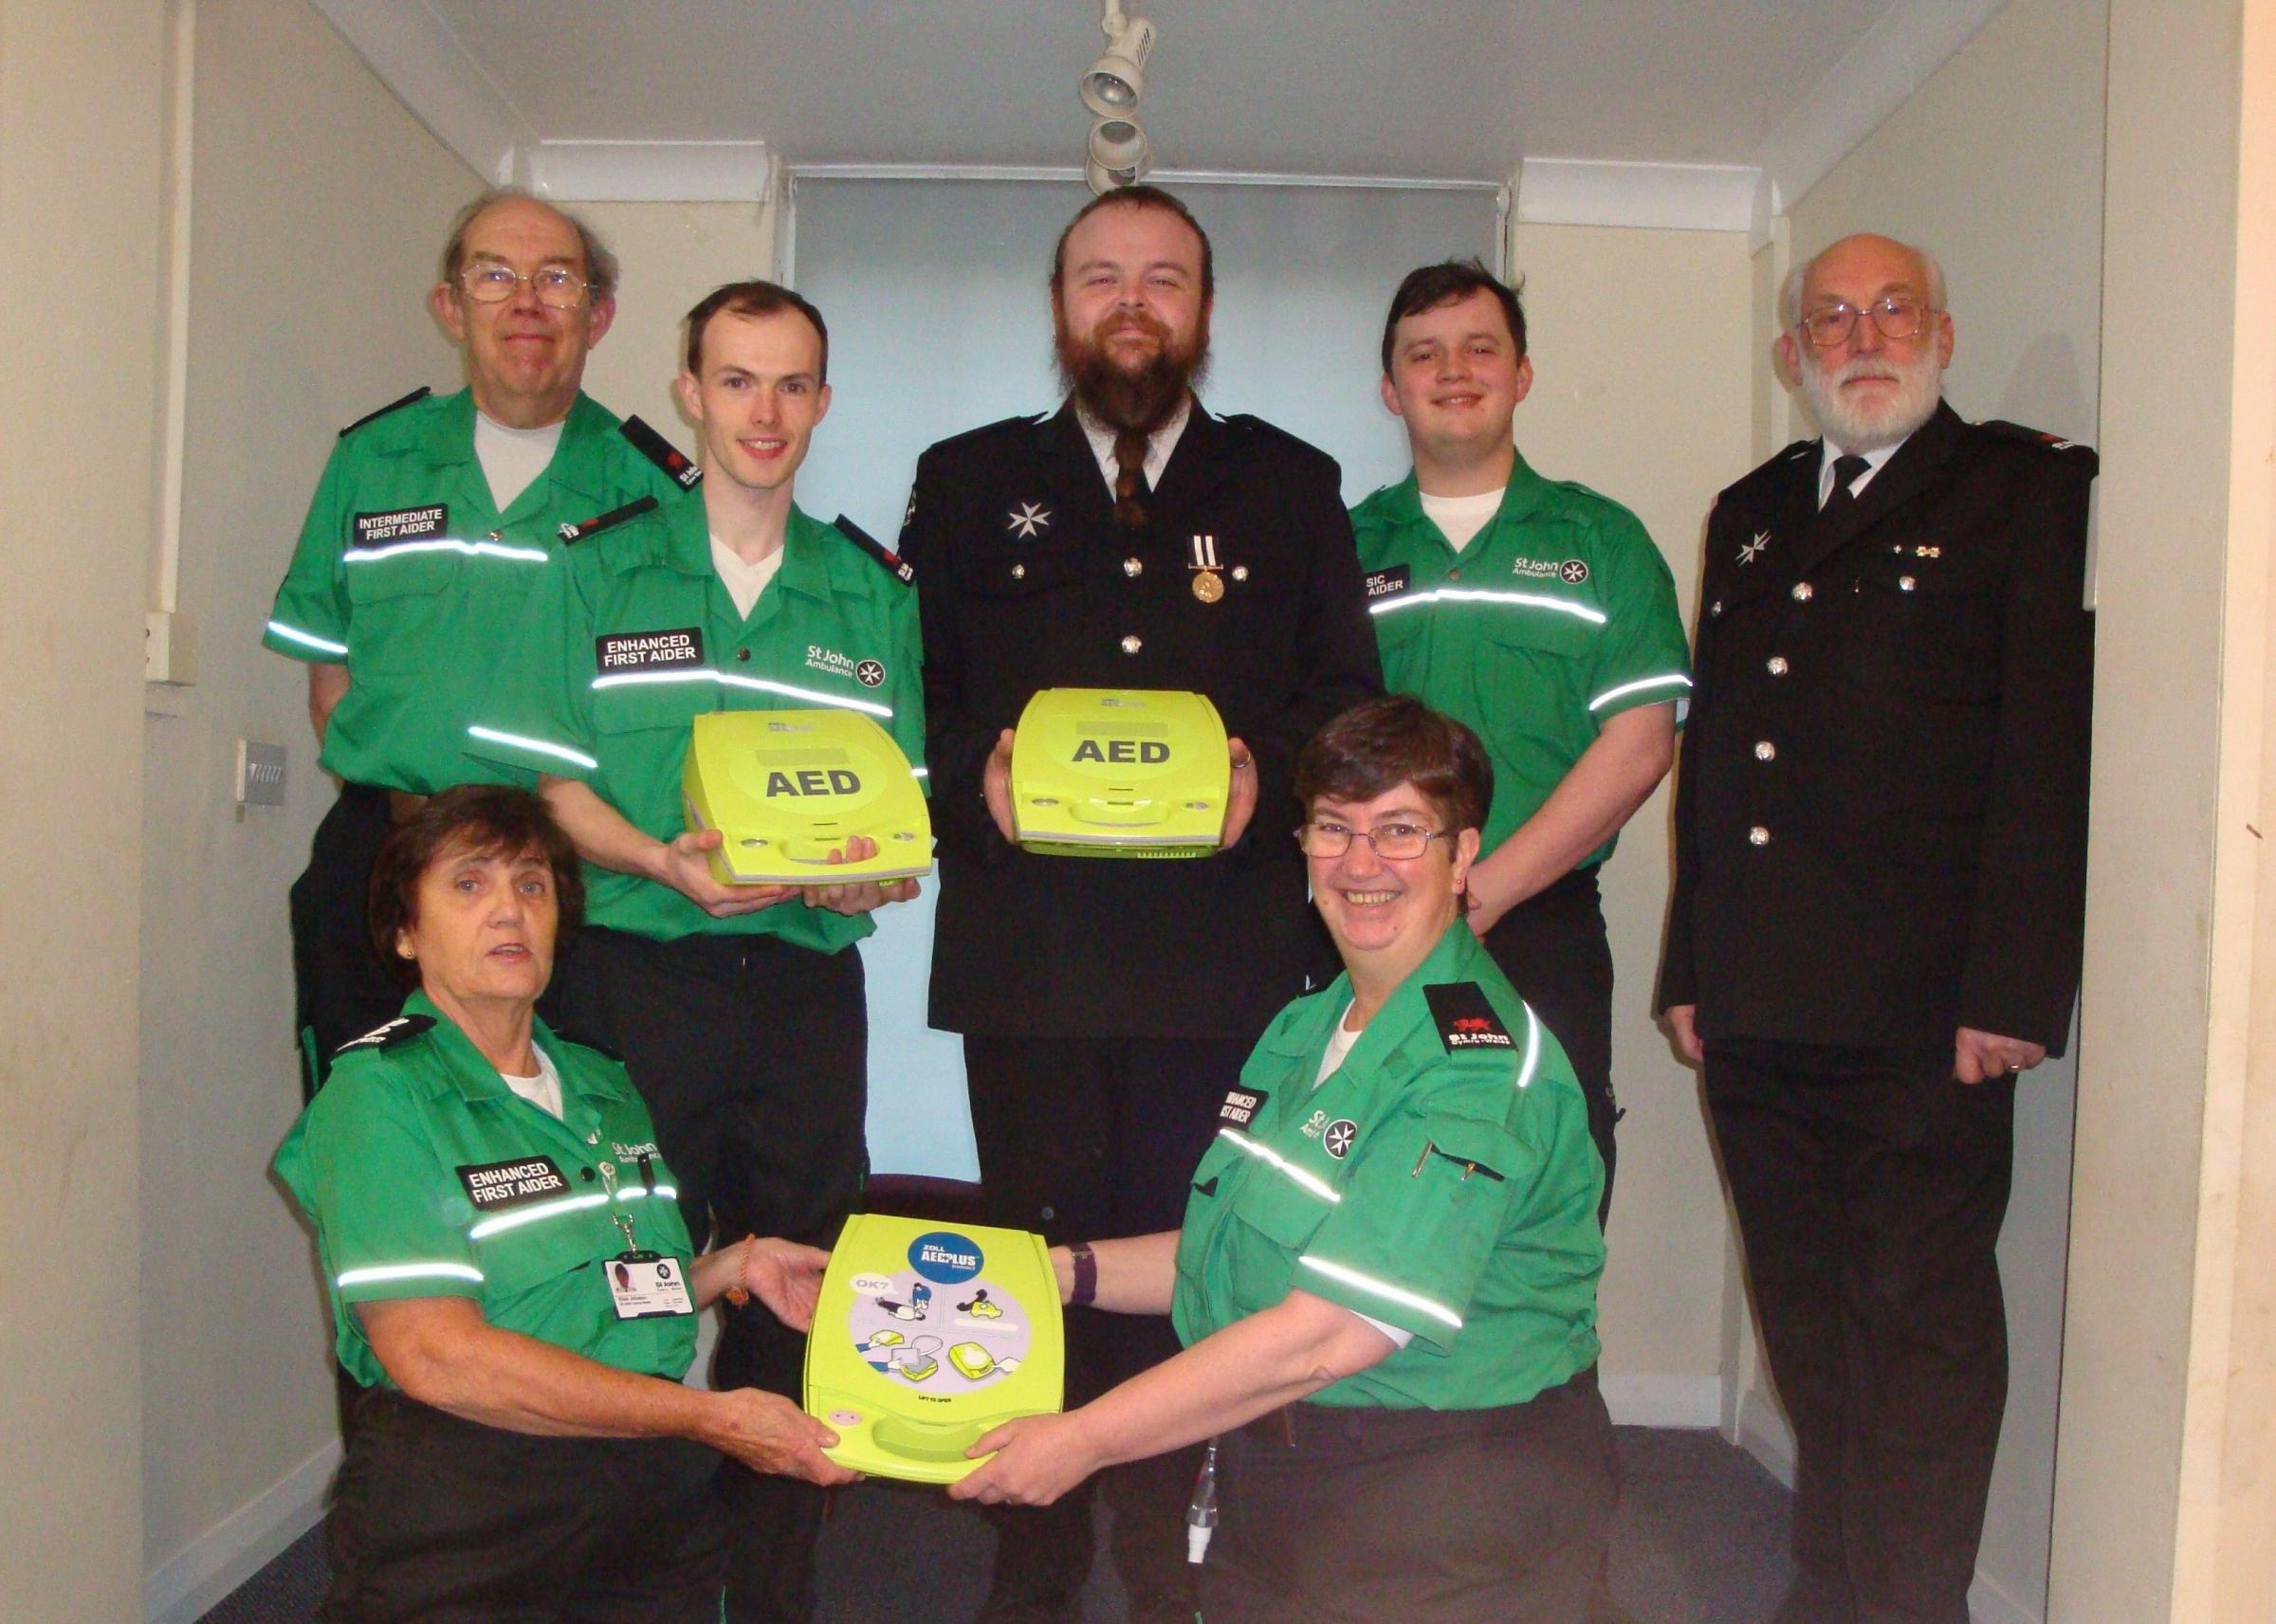 Colwyn Bay St John Ambulance and the new kit